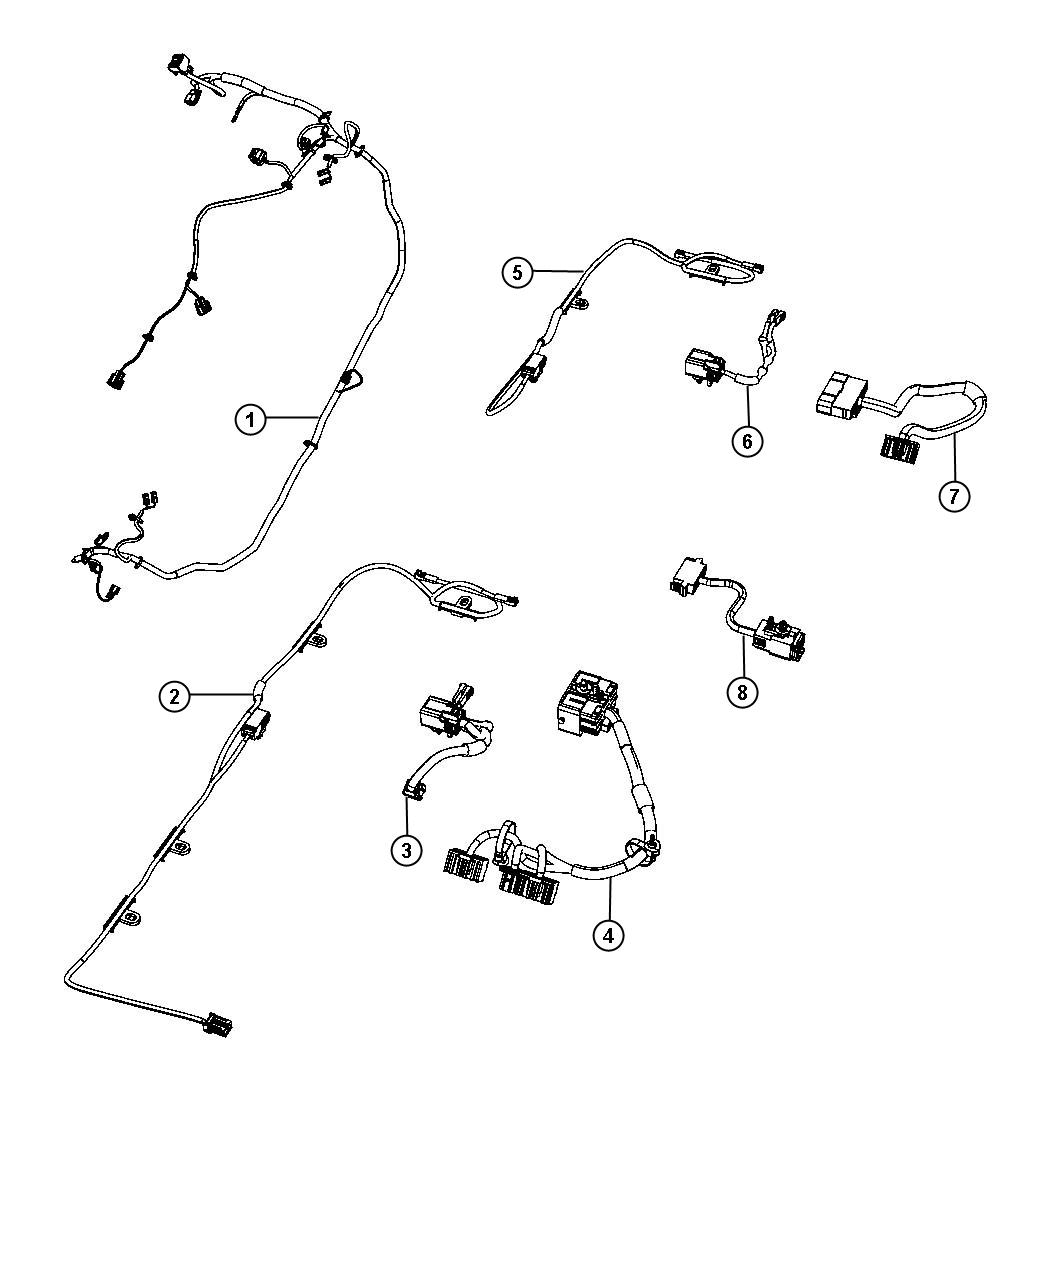 2013 Chrysler Town  U0026 Country Wiring  Jumper  Overhead